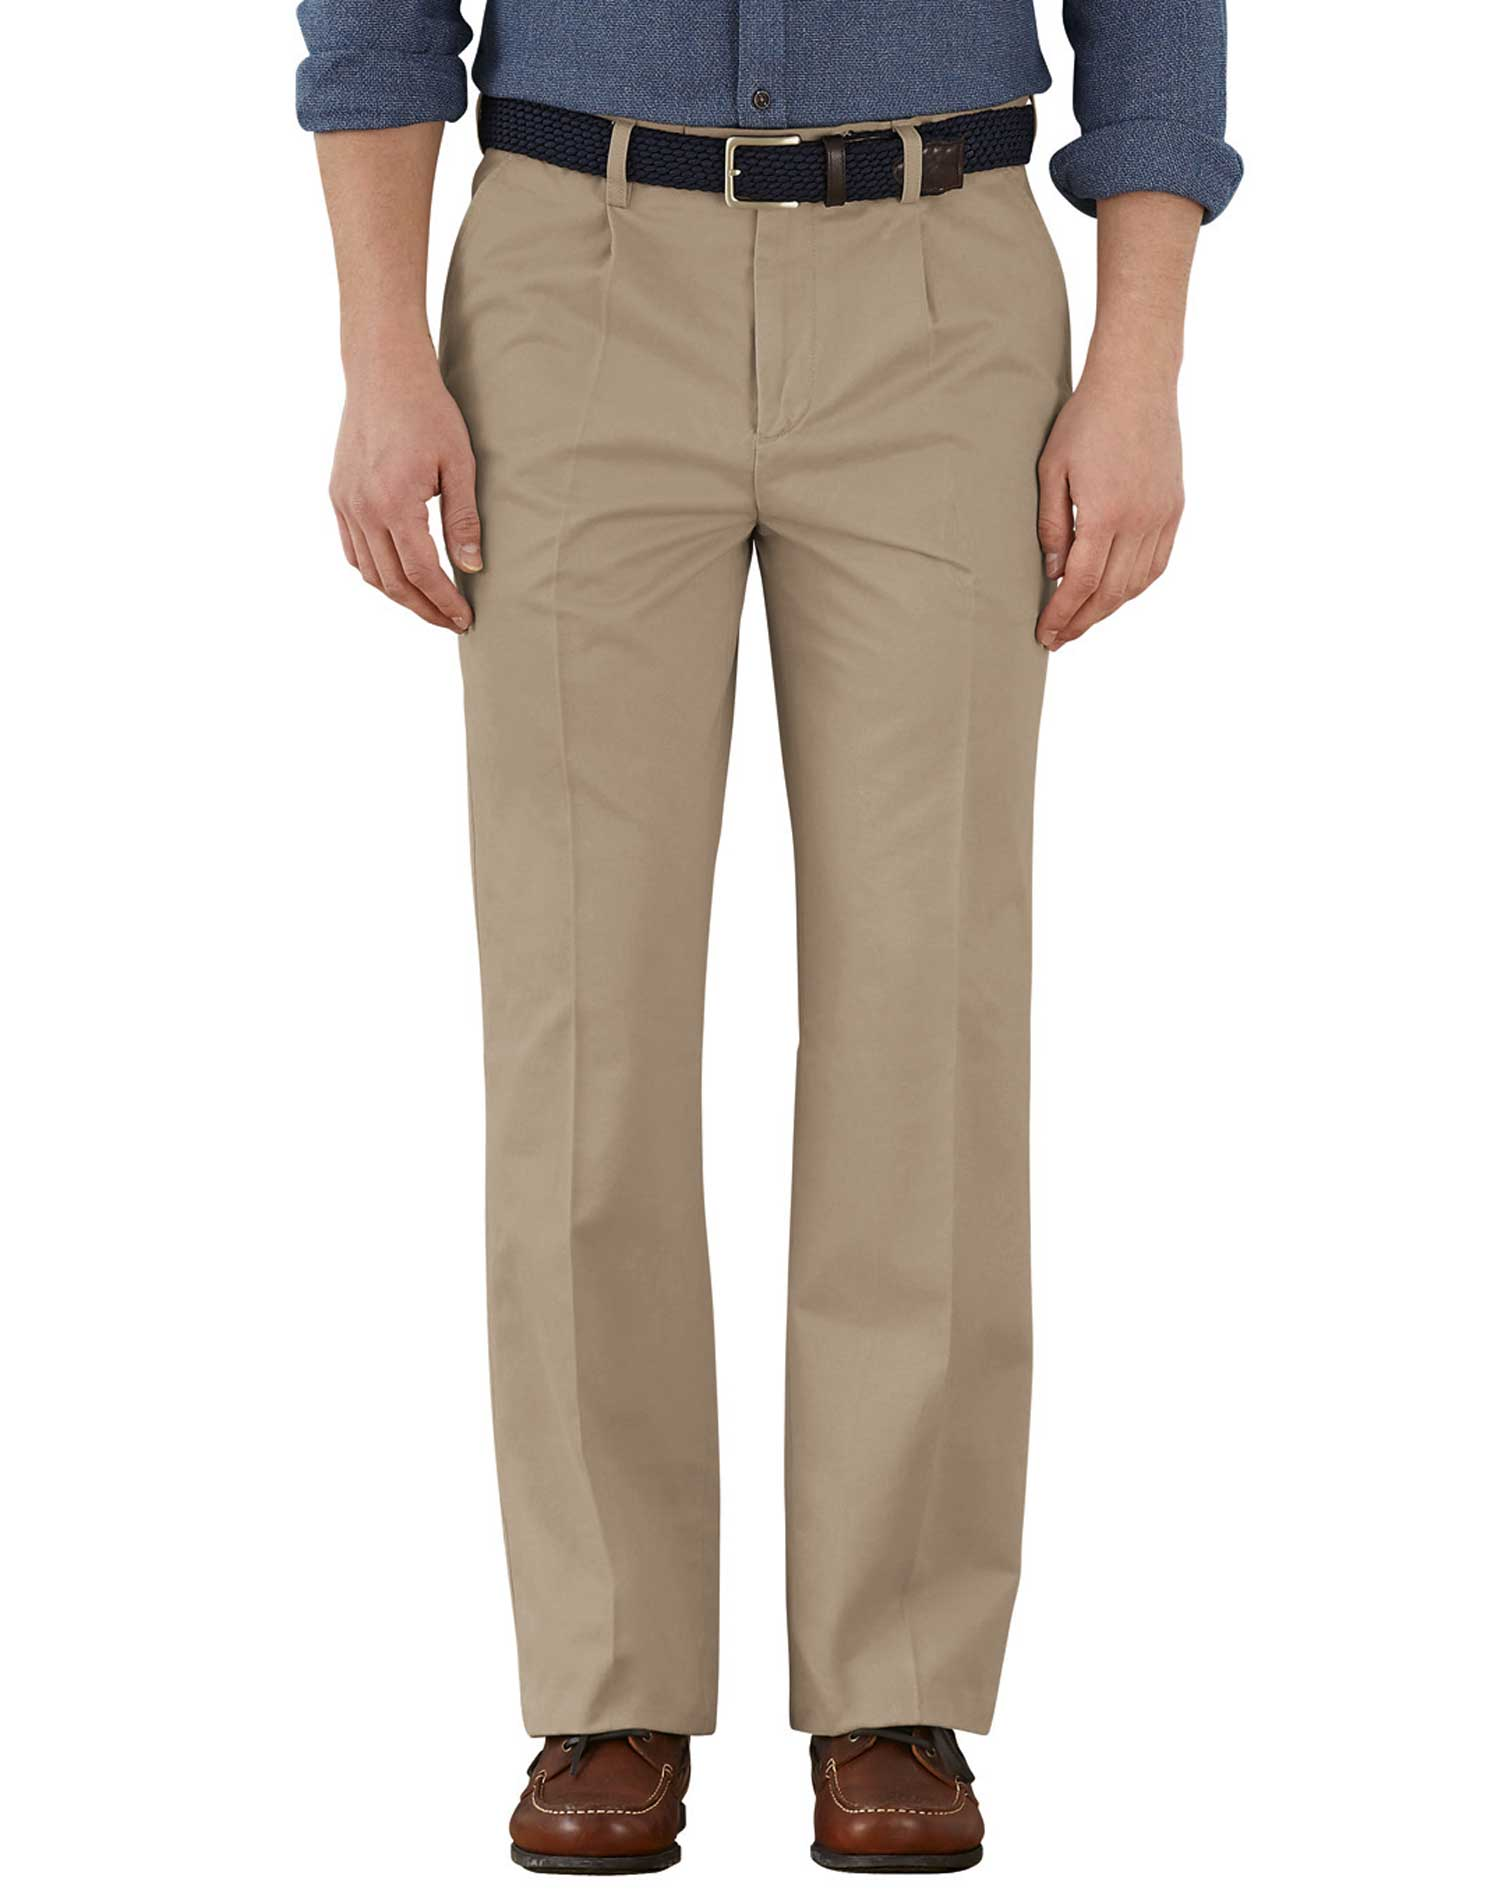 Stone Classic Fit Single Pleat Weekend Cotton Chino Trousers Size W36 L30 by Charles Tyrwhitt